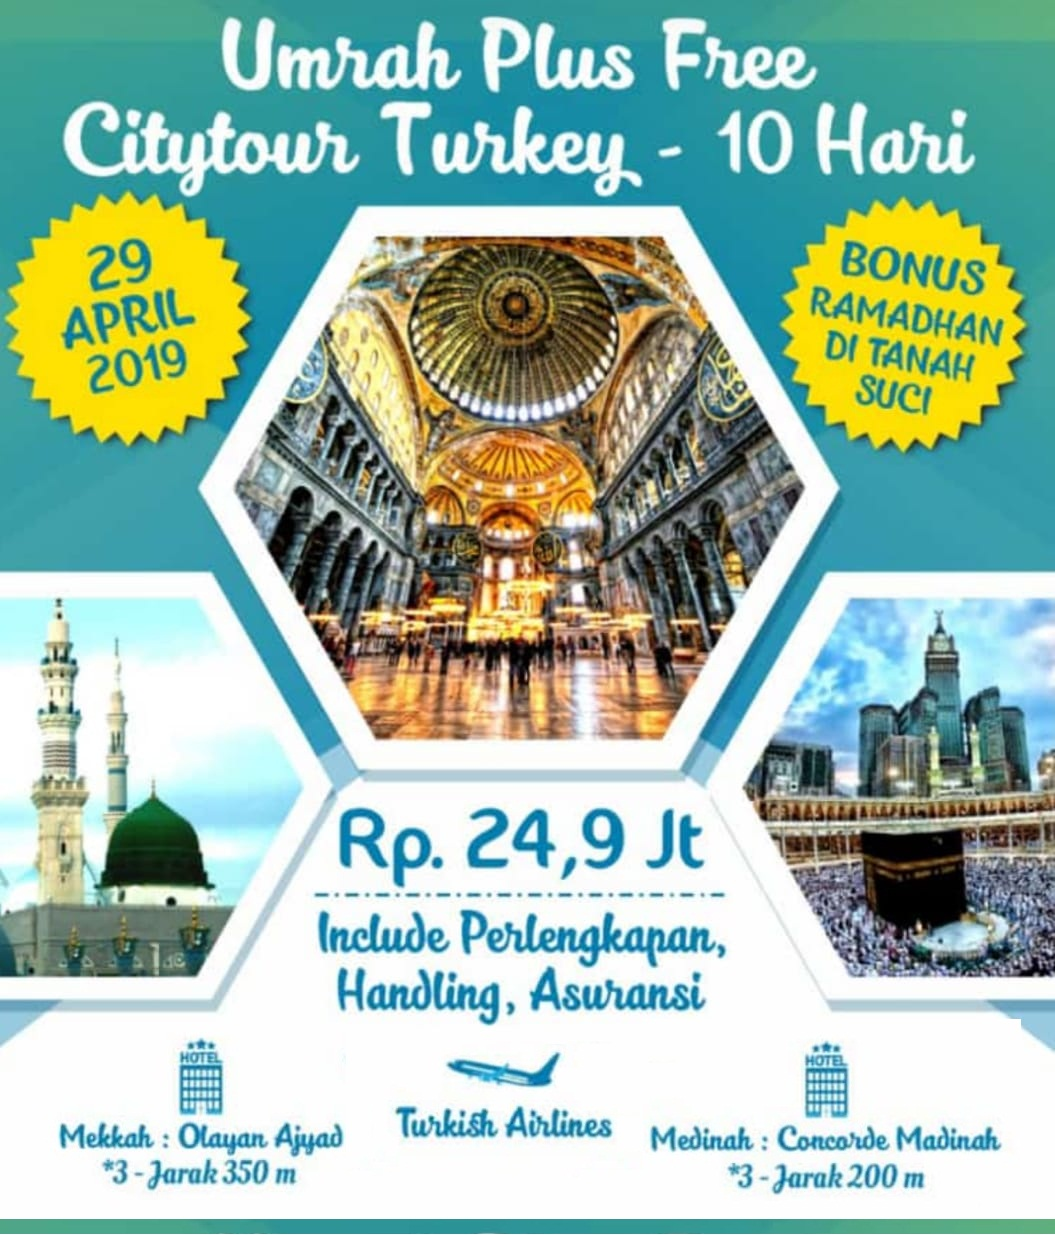 Paket Umroh Plus City Tour Turki April 2019